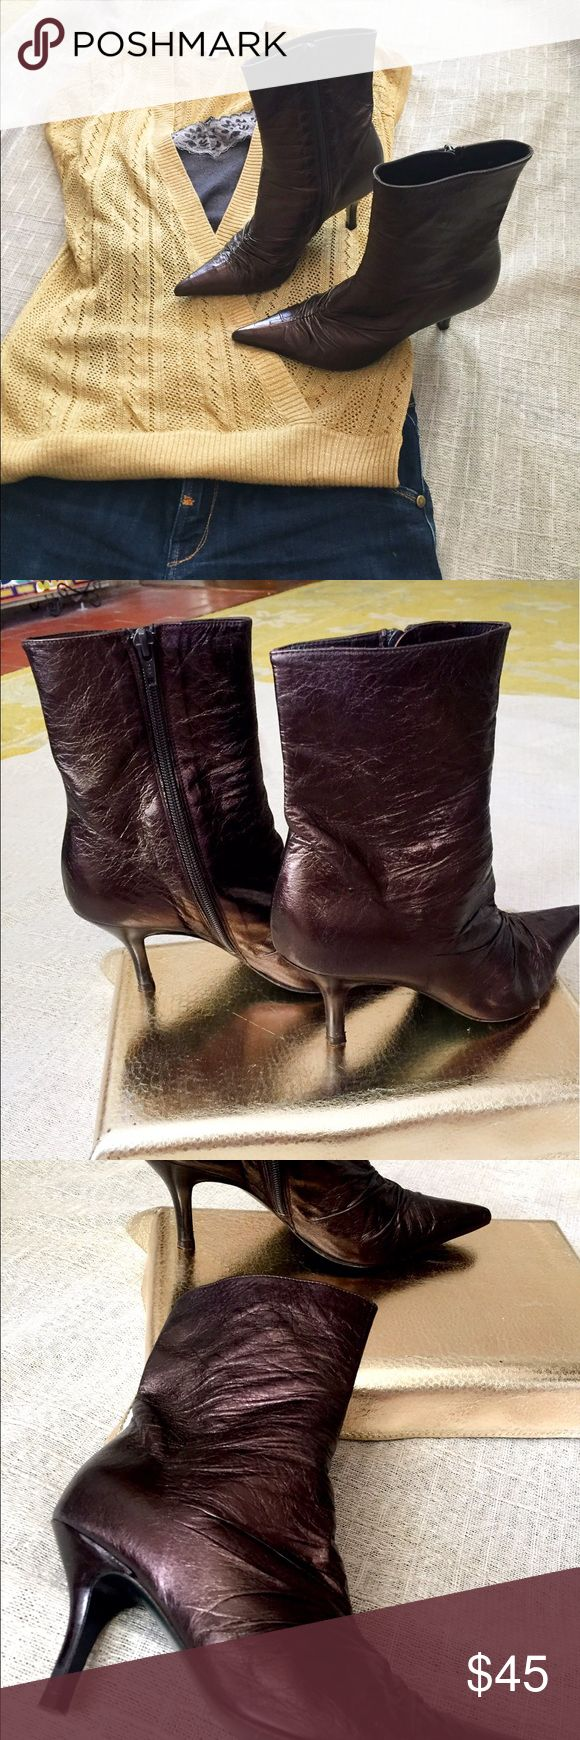 Rebeca Sanver booties, 36 Eur, dark plum leather Edgy boots from Spanish designer Rebeca Sanver. Supple leather, dark burnished plum with slight iridescent sheen. Can look more purple or more bronze depending on the light. Truly stunning and unique from a popular European designer not well known in the states. Original box and packing materials. Rebeca Sanver Shoes Ankle Boots & Booties